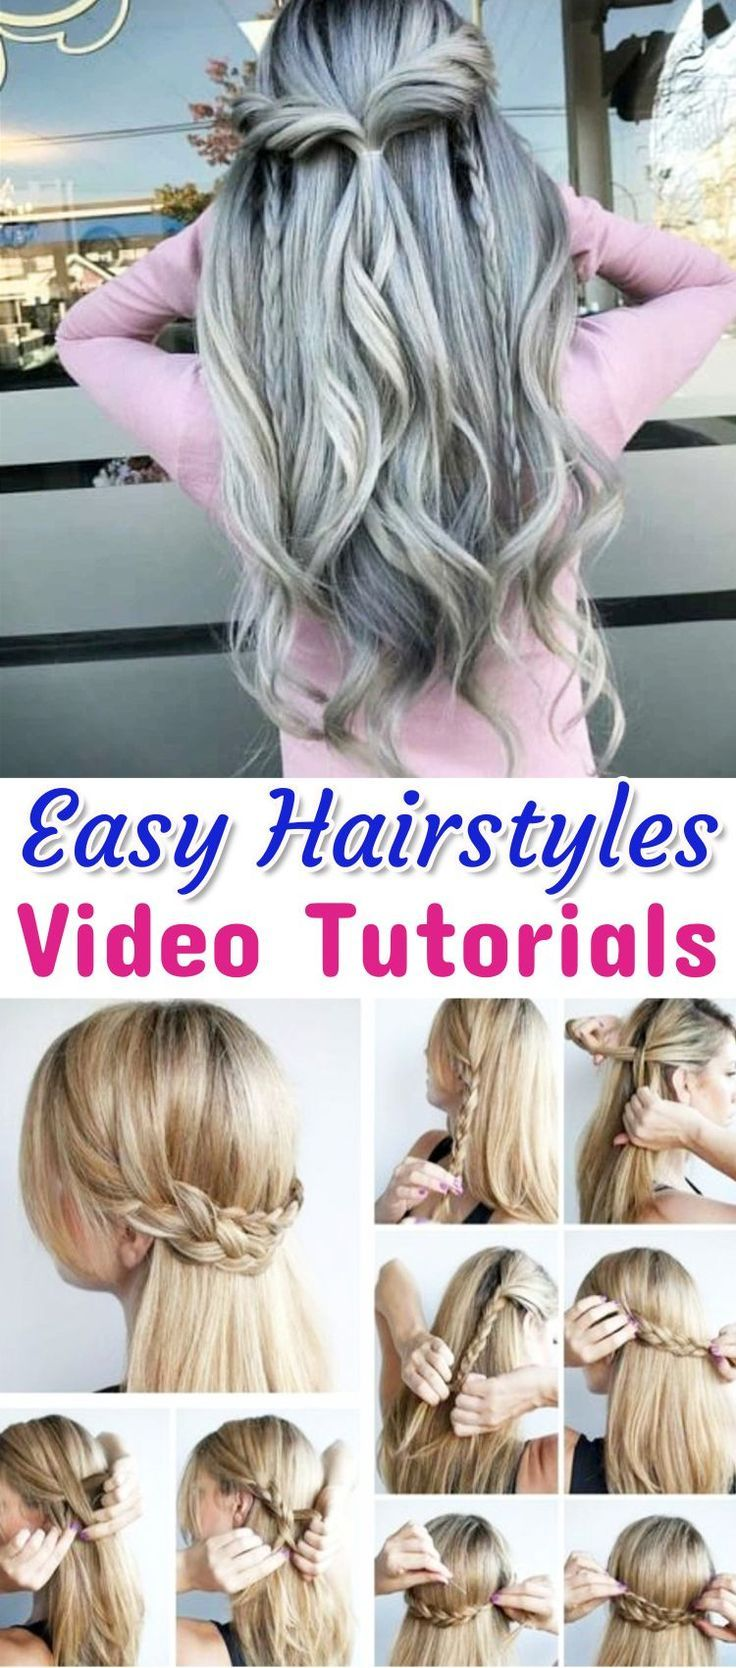 Easy hairstyle ideas video tutorials easy step by step